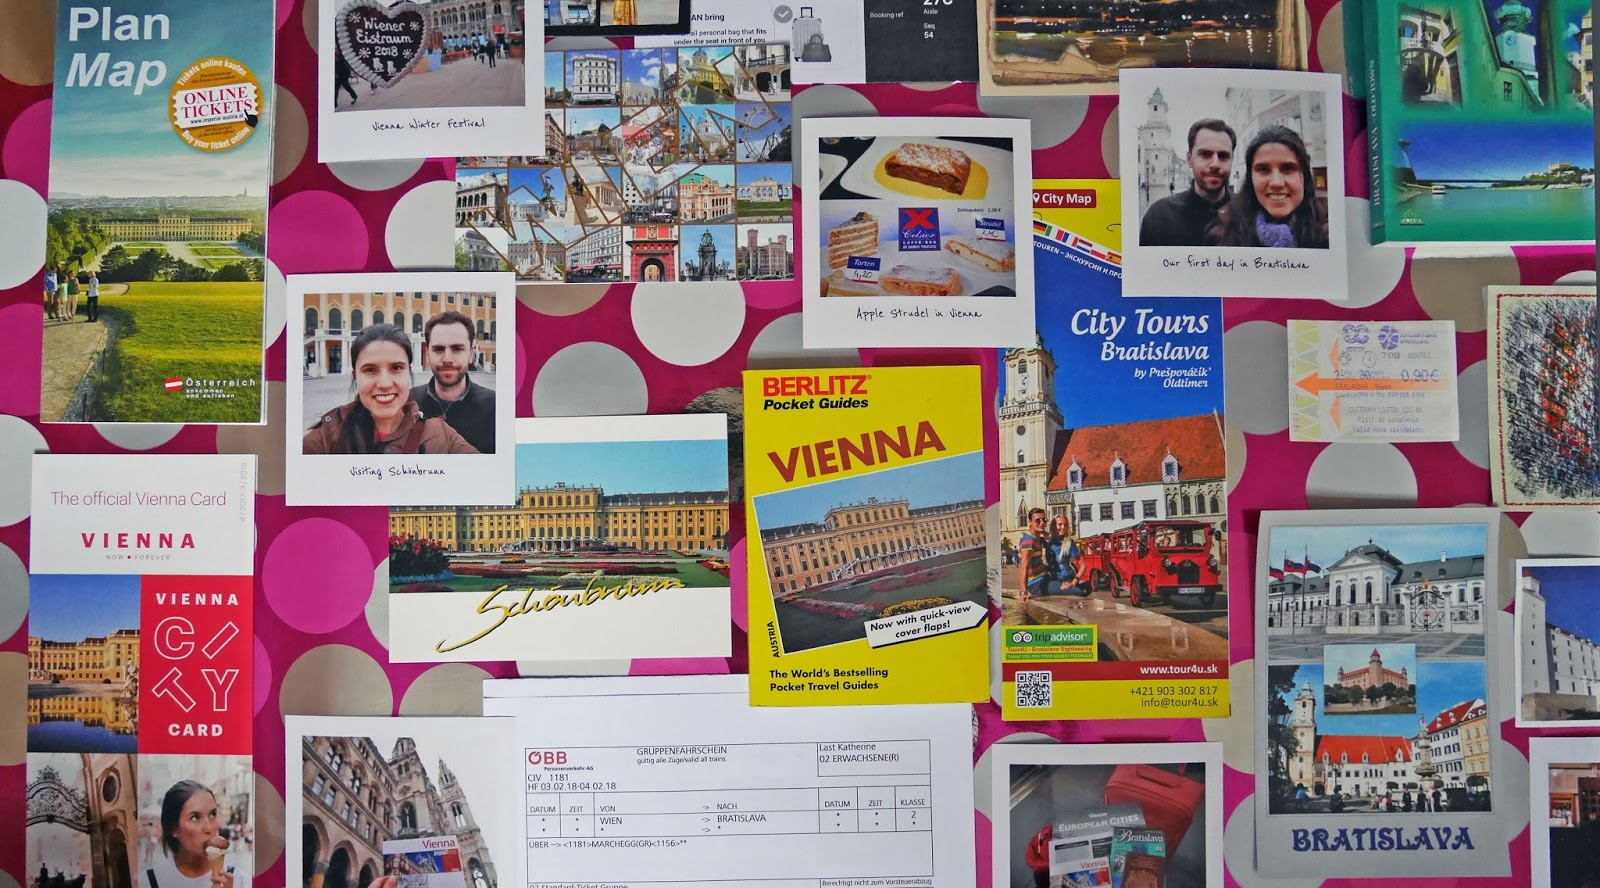 Photos, postcards, leaflets and stickers from Vienna, Austria